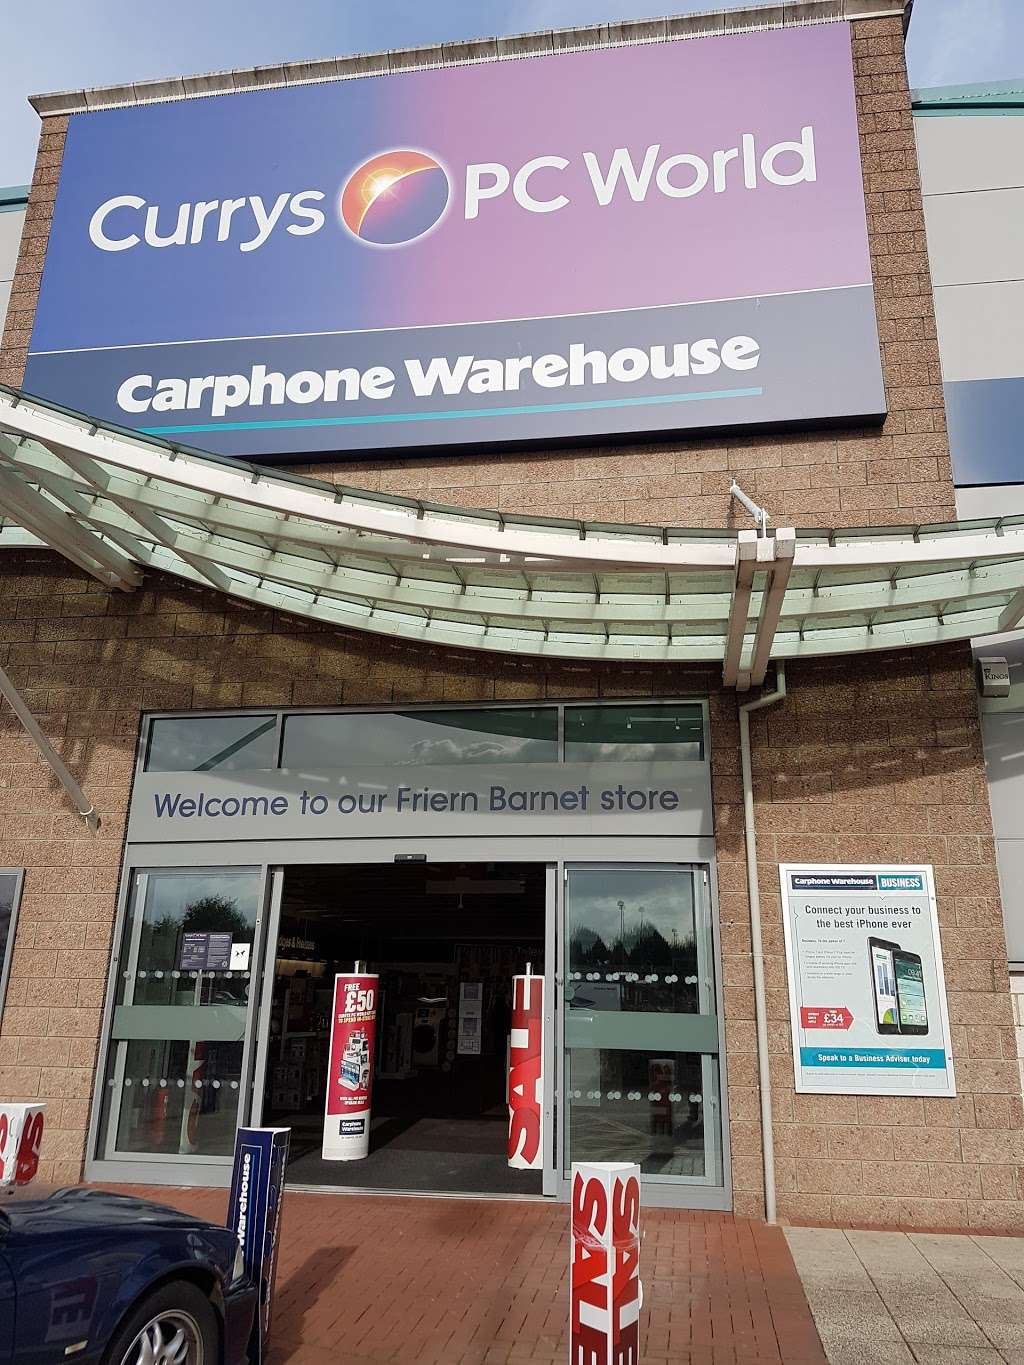 Currys PC World featuring Carphone Warehouse - Electronics store